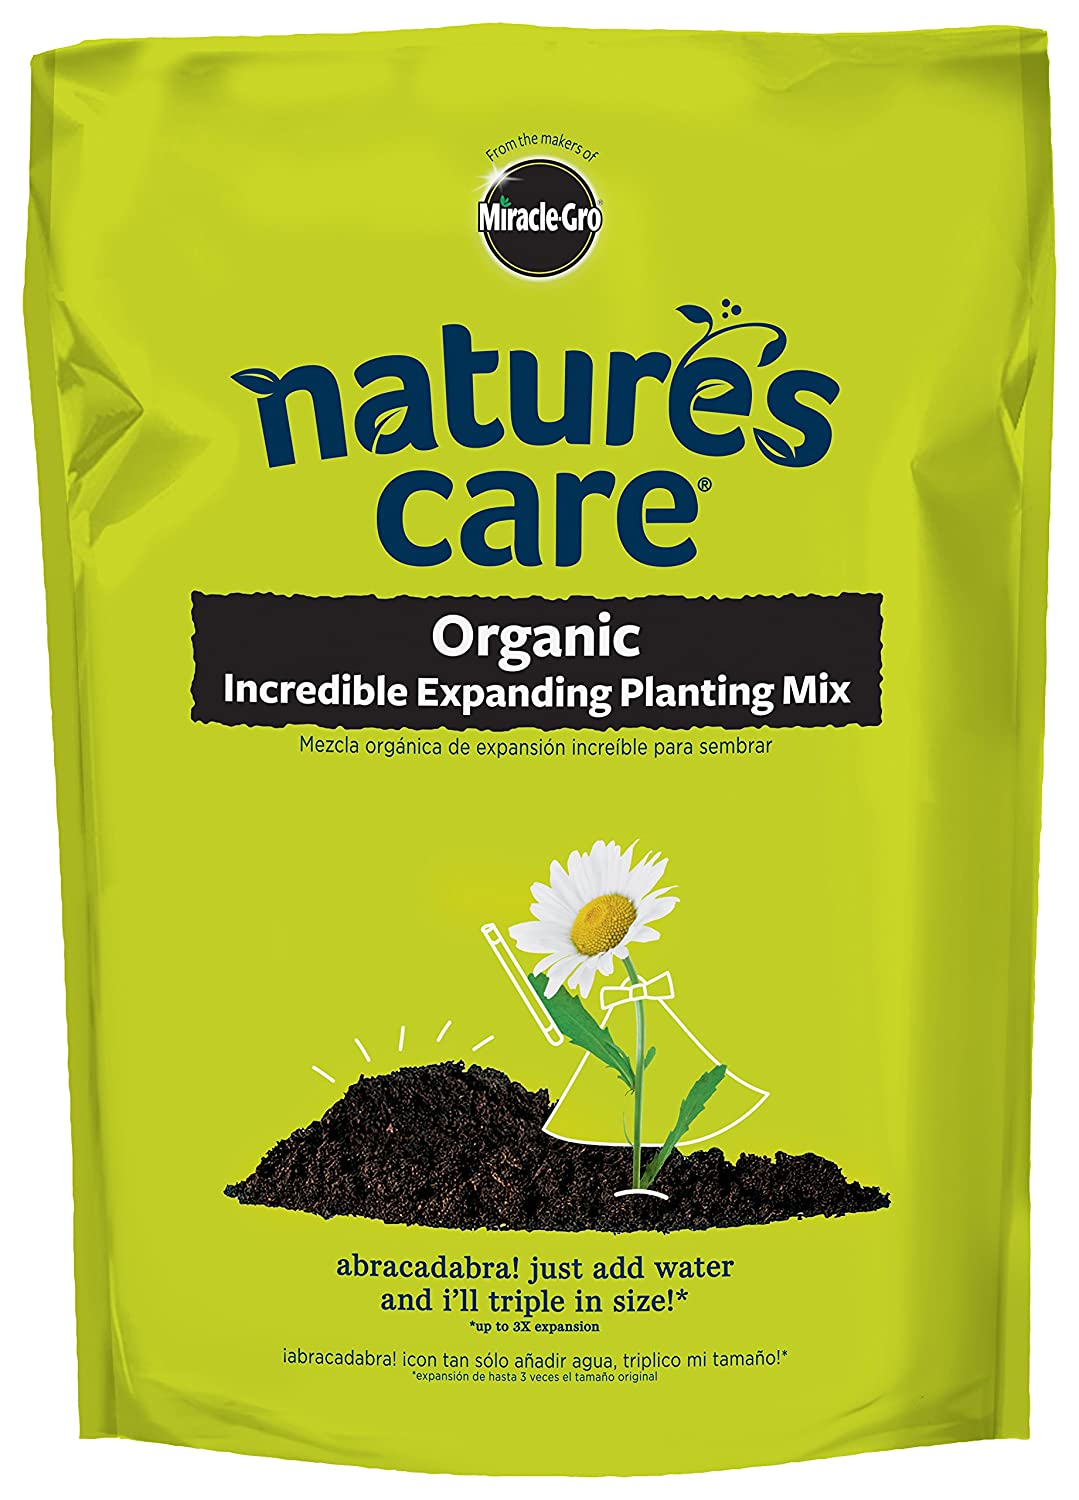 Nature's Care Organic Incredible Expanding Planting Mix 0.33CF